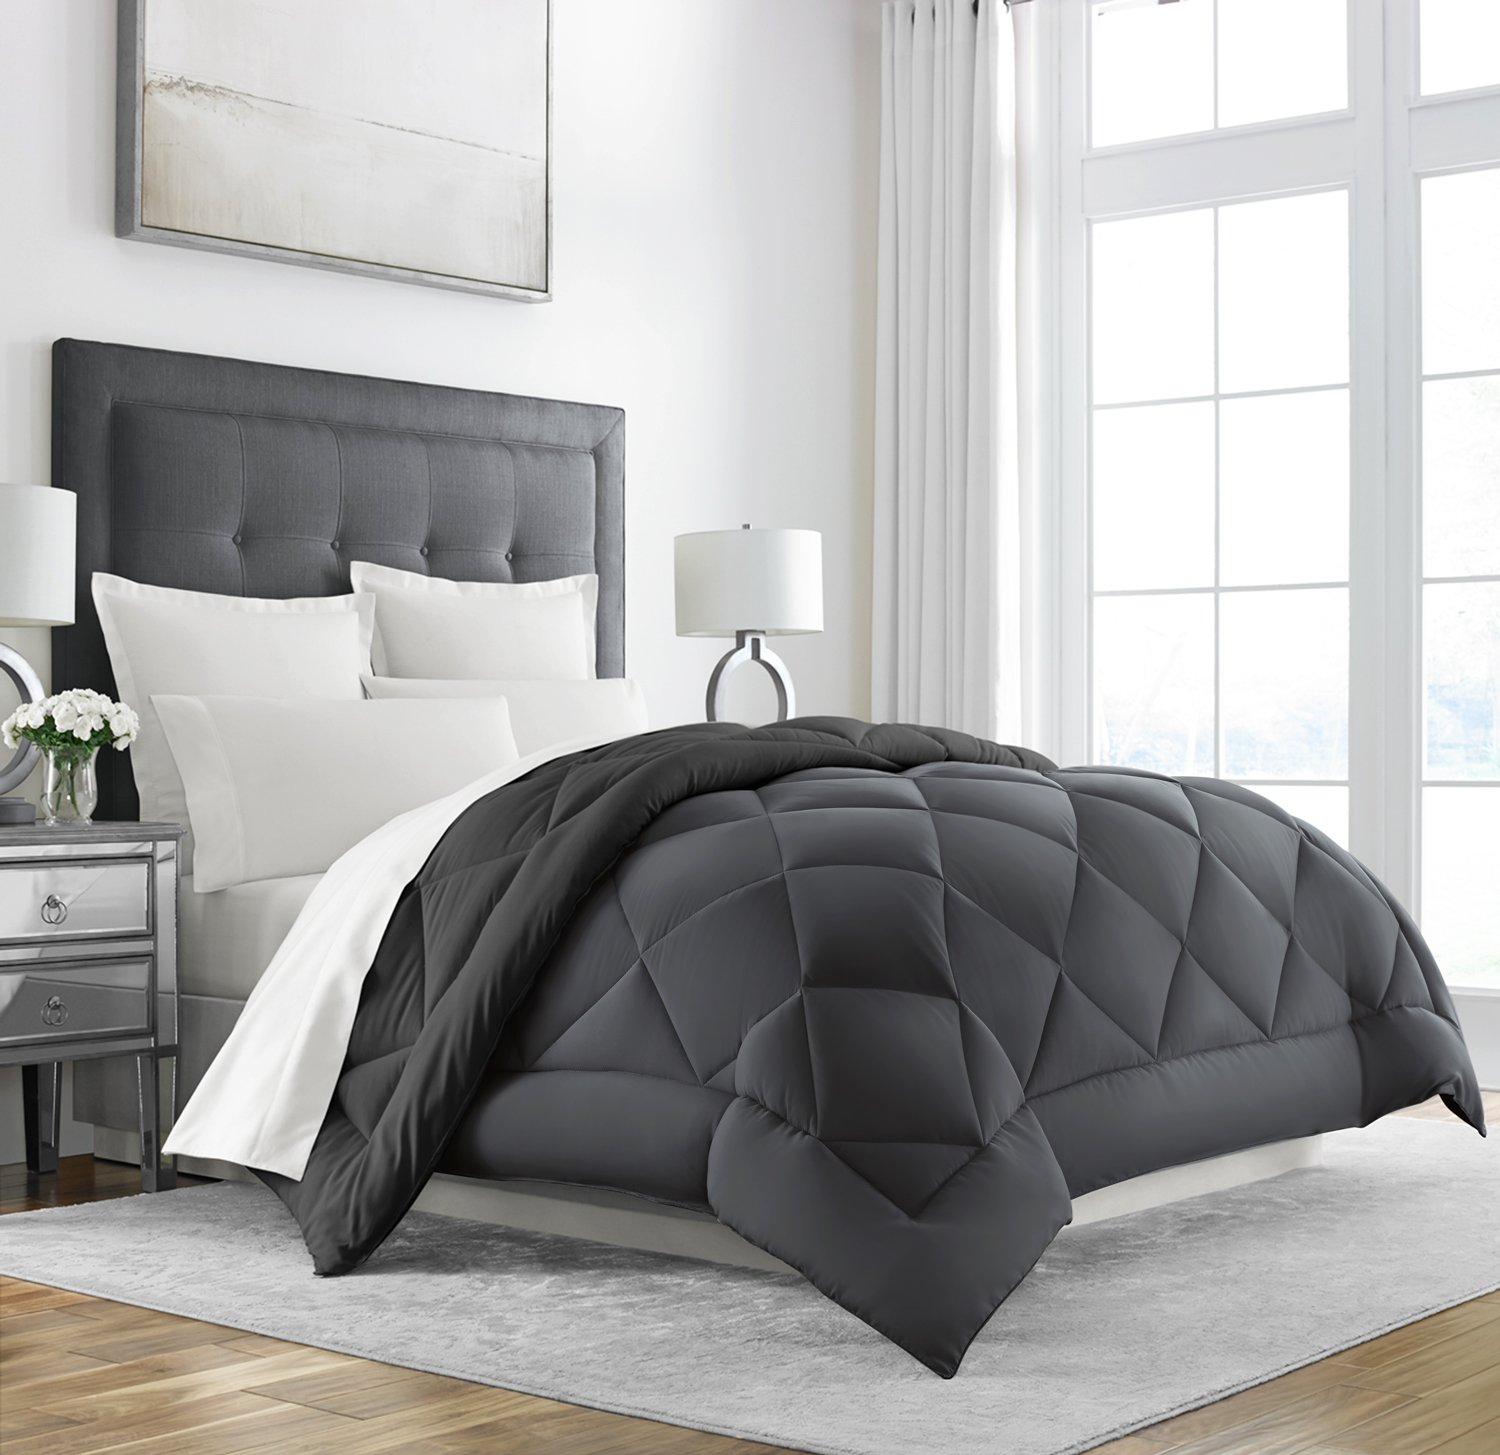 Sleep restoration goose down alternative comforter reversible all season hotel quality luxury hypoallergenic comforter king cal king grey black